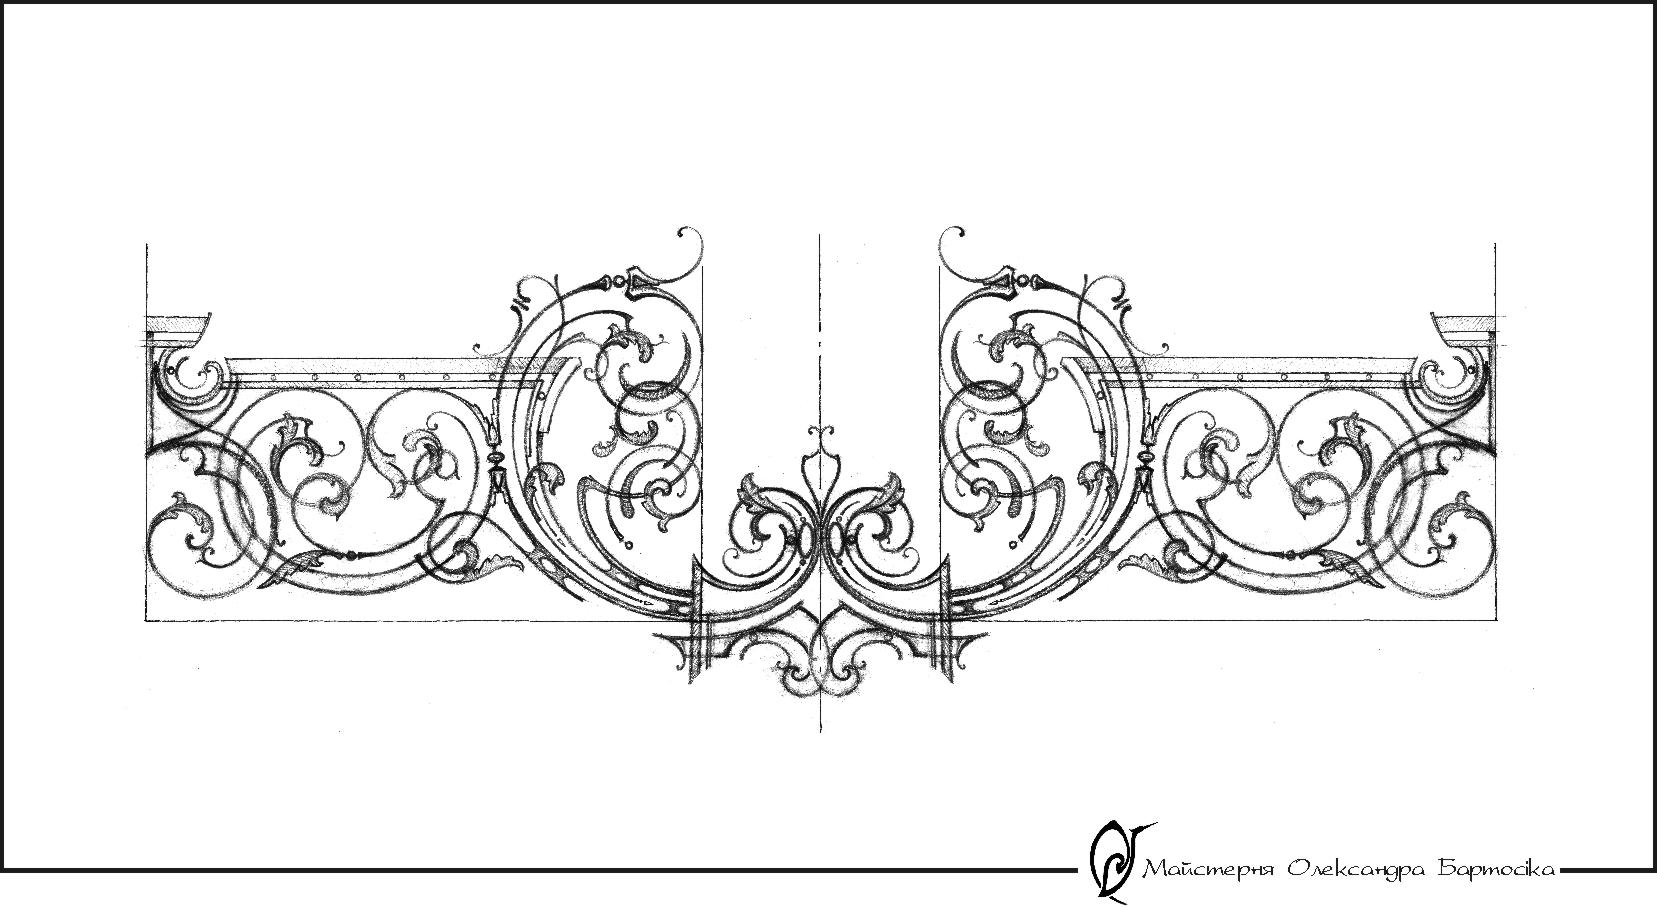 Kaleidoscope-Draft of railings